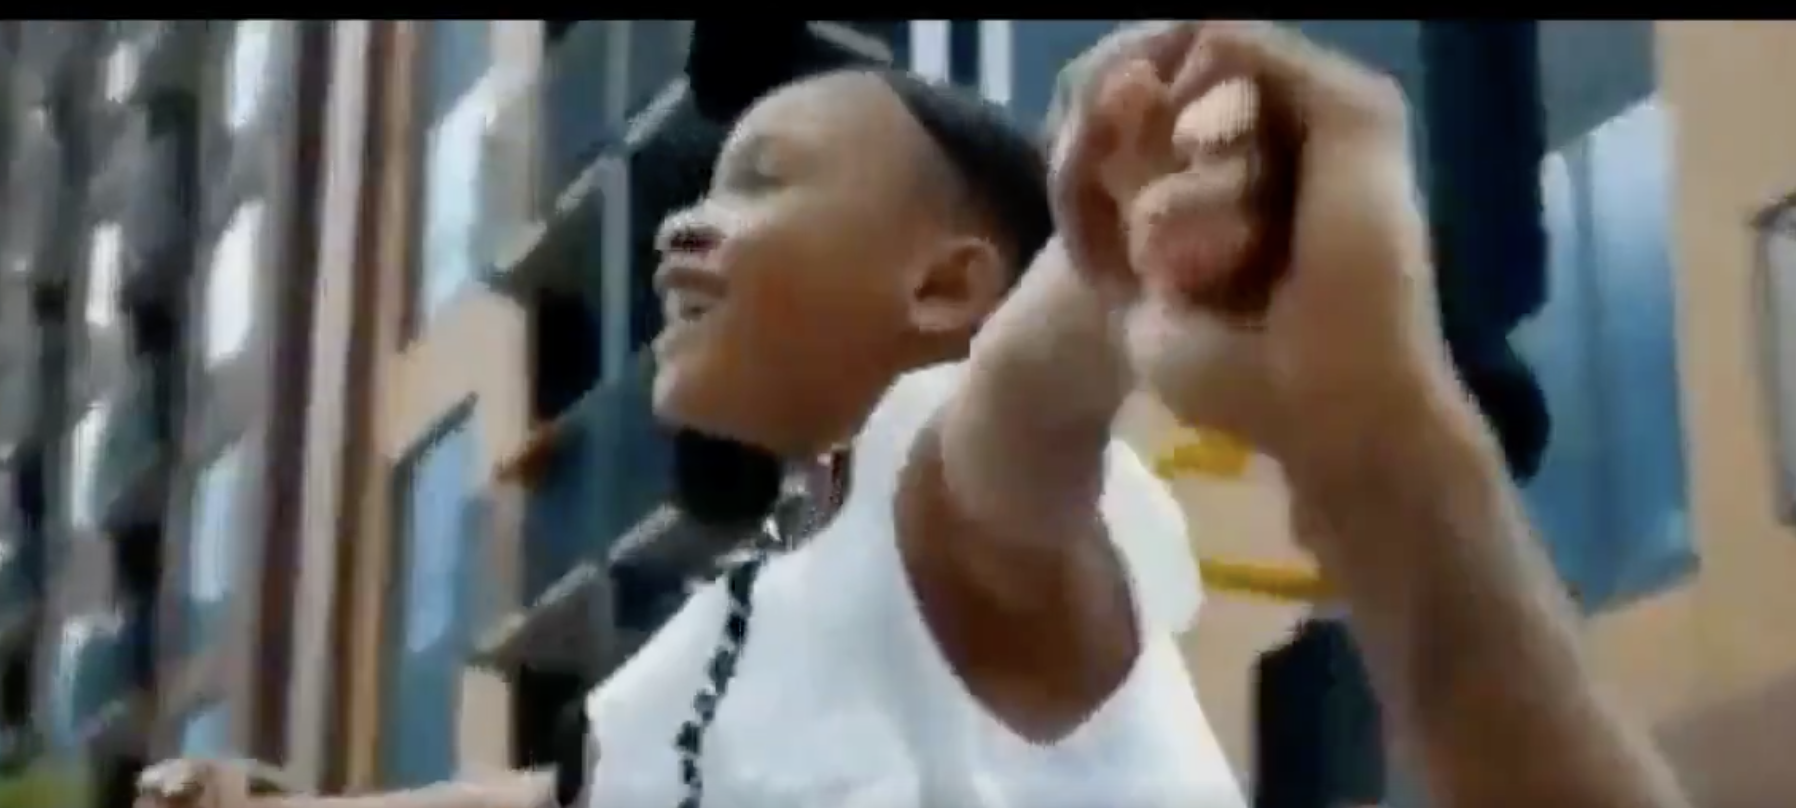 Screen-Shot-2020-10-30-at-11.36.20-AM 'The Lincoln Project' Delivers Friday Gut-Punch To Trump With New Video Child Abuse Civil Rights Featured Politics Top Stories